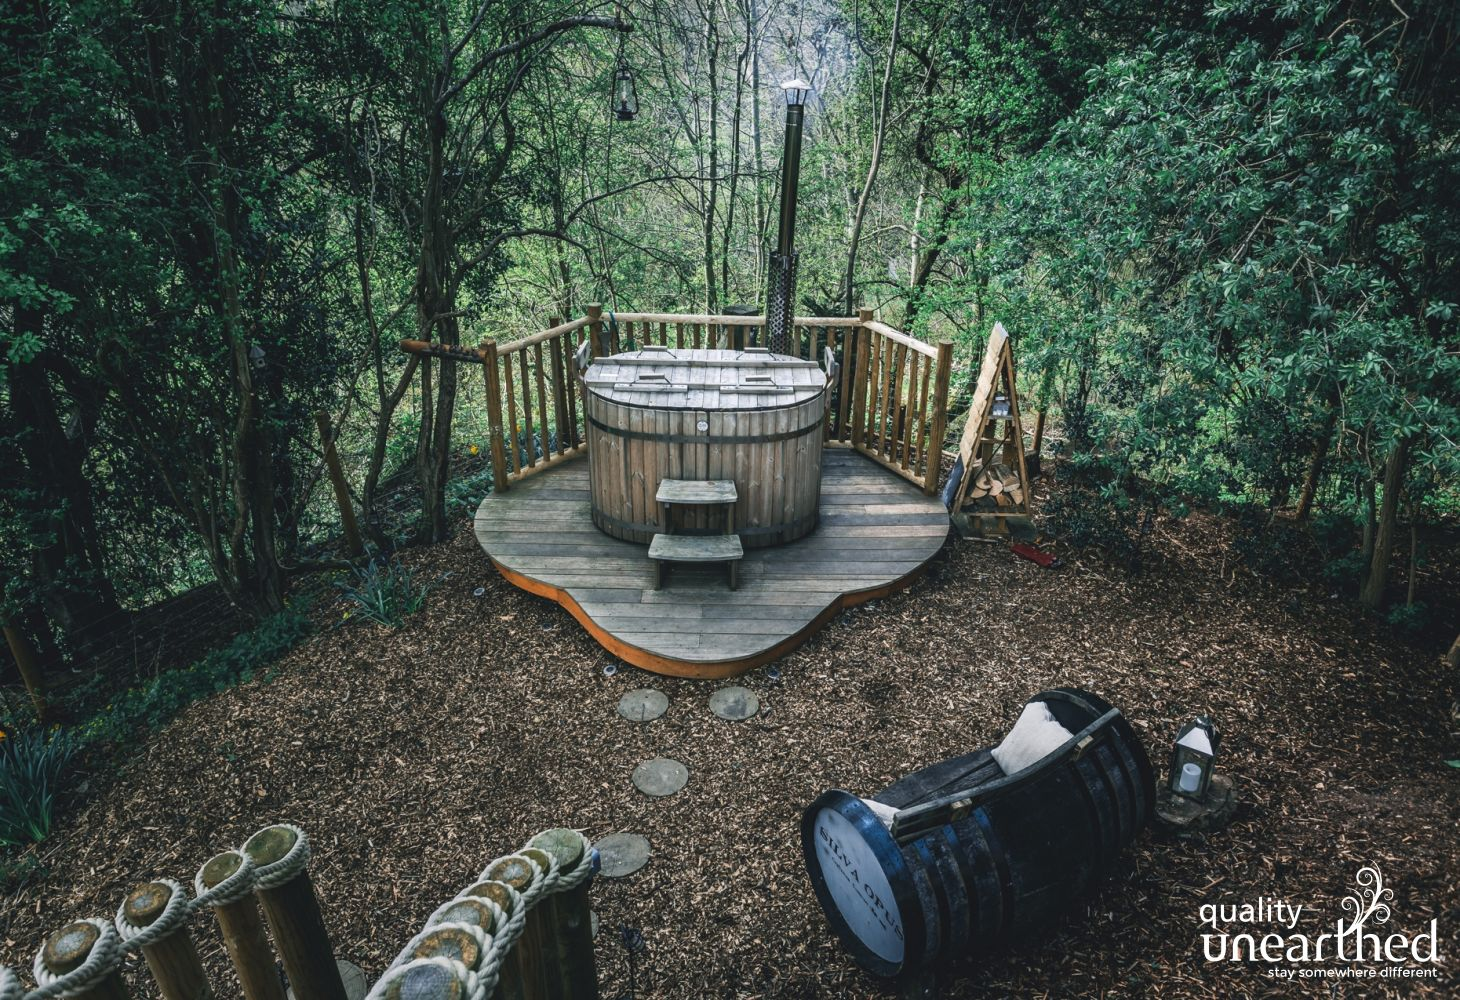 Access the wood fired hot tub from the treehouse terrace. This Breacon Beacons woodland surrounds the hot tub